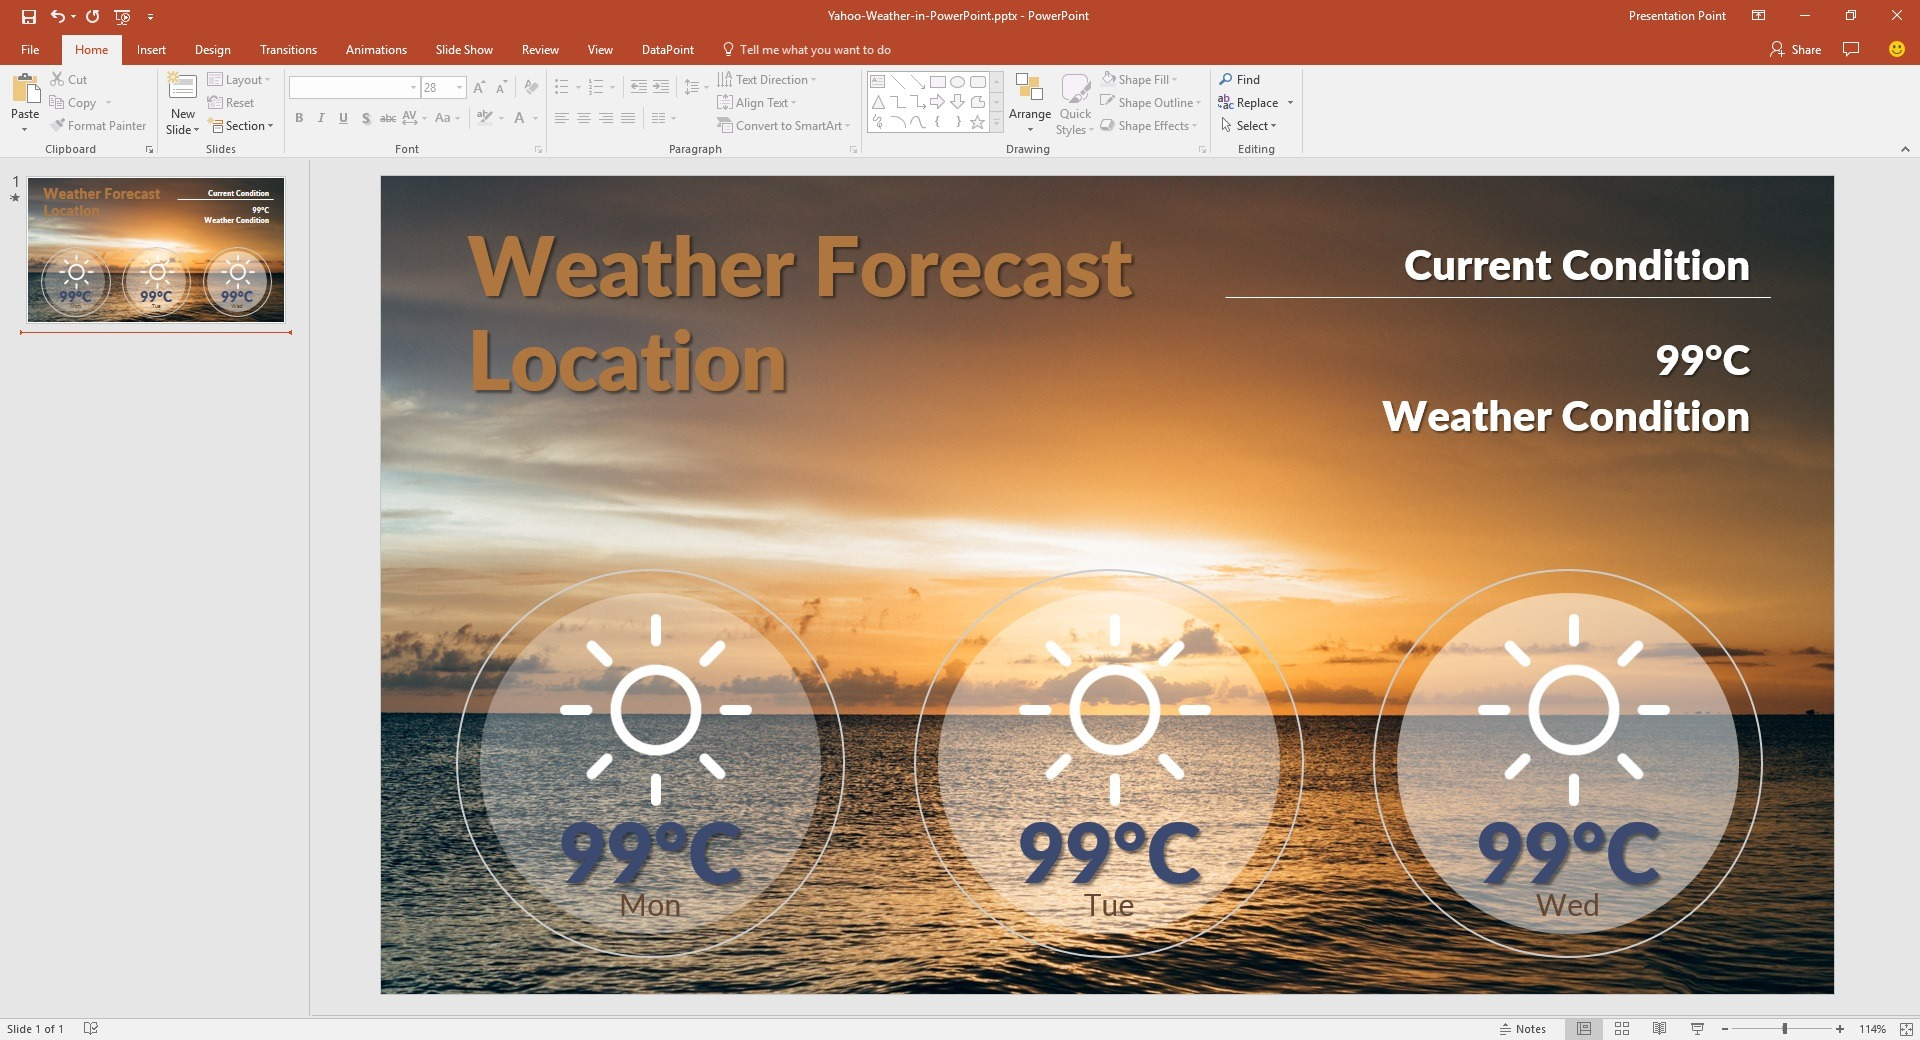 Live Yahoo Weather in PowerPoint • PresentationPoint